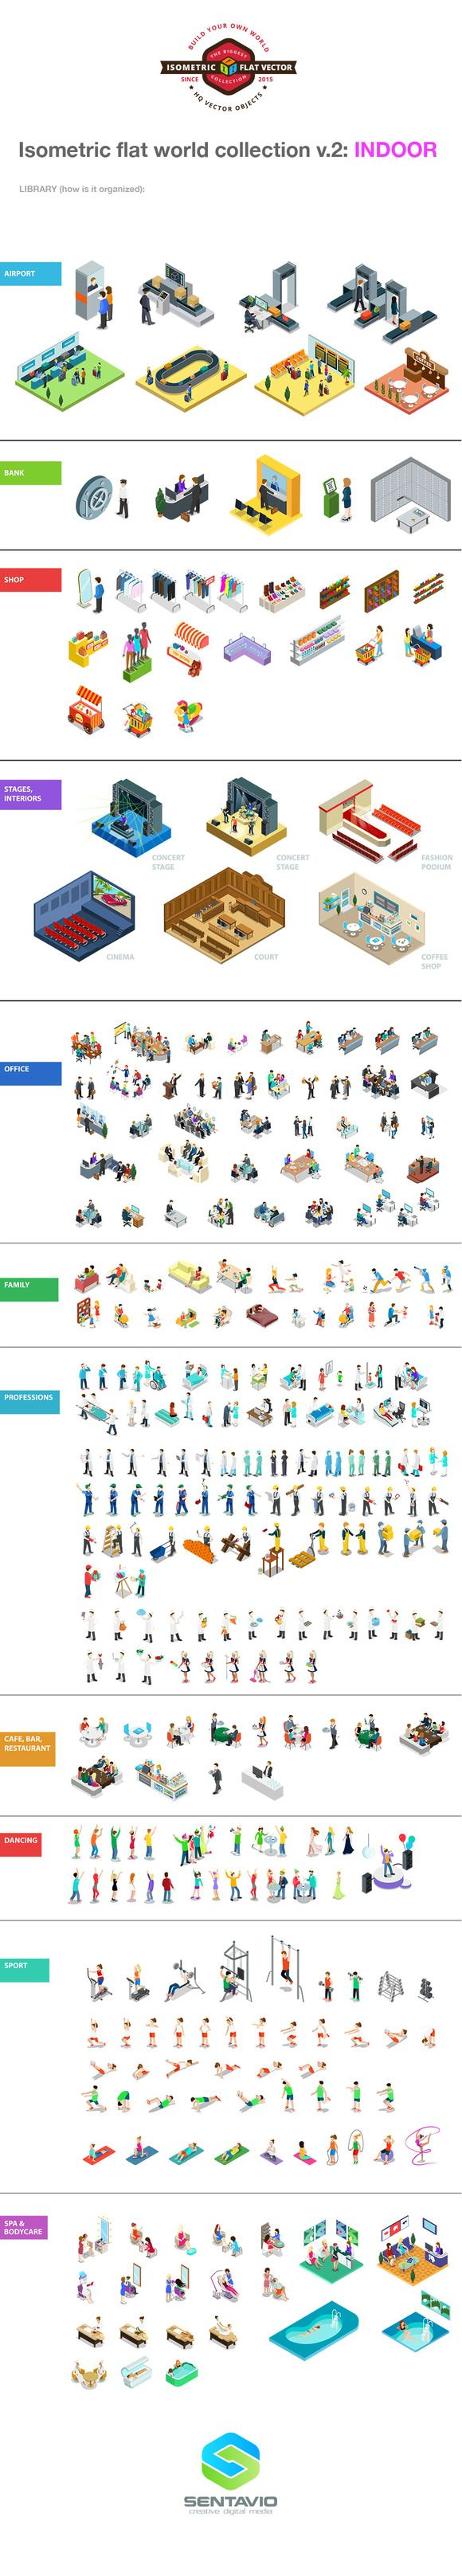 #Vector #isometric #flat style INDOOR collection: #interiors, #people #professions, #workplaces, #furniture, #airport, #bank, #shop, #stages, #office, #family, #cafe, #bar, #restaurant, #dancing, #sport, #spa #bodycare  Download: https://creativemarket.com/Sentavio/512322-Isometric-flat-world-collection-v.2